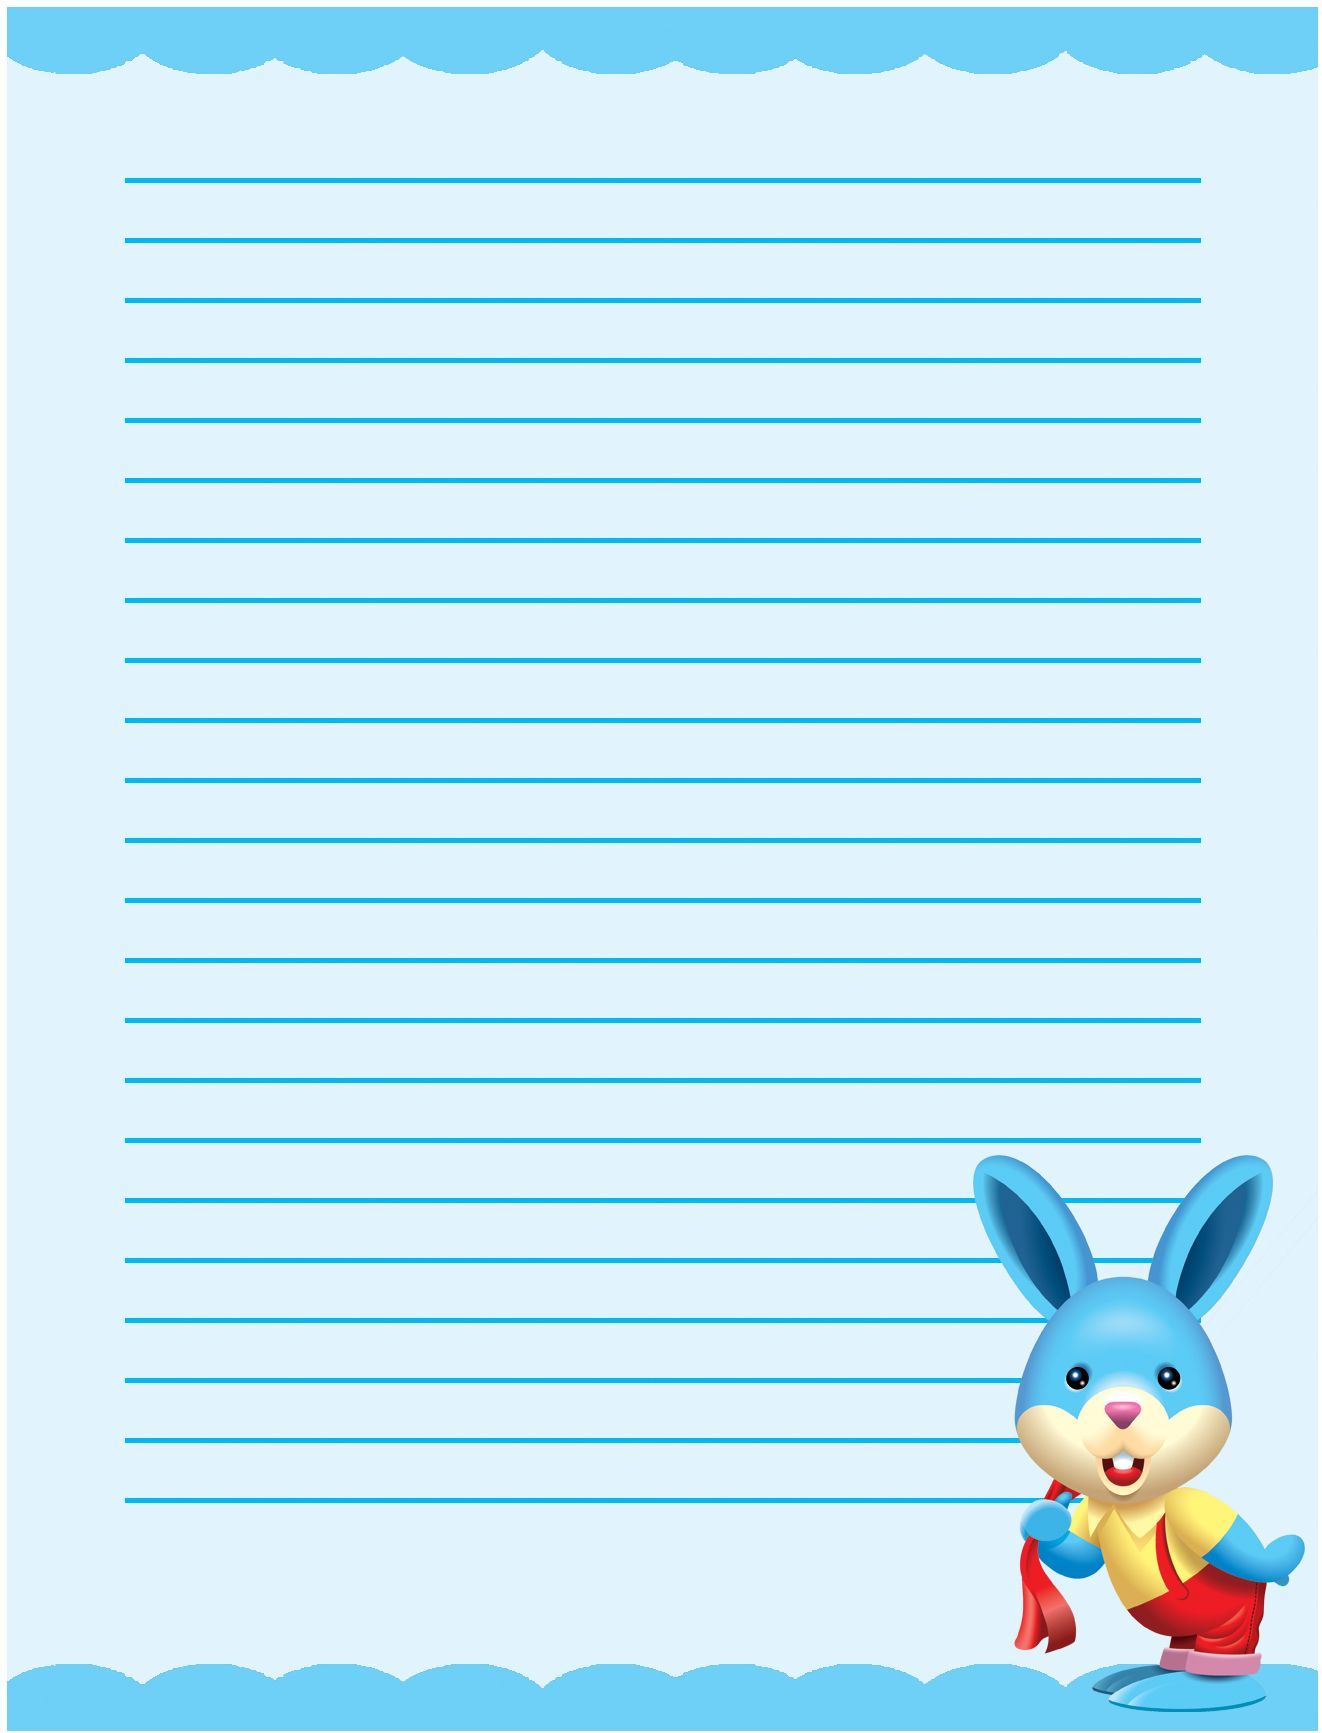 cute bunny single lined writing paper template briefpapier cute bunny single lined writing paper template